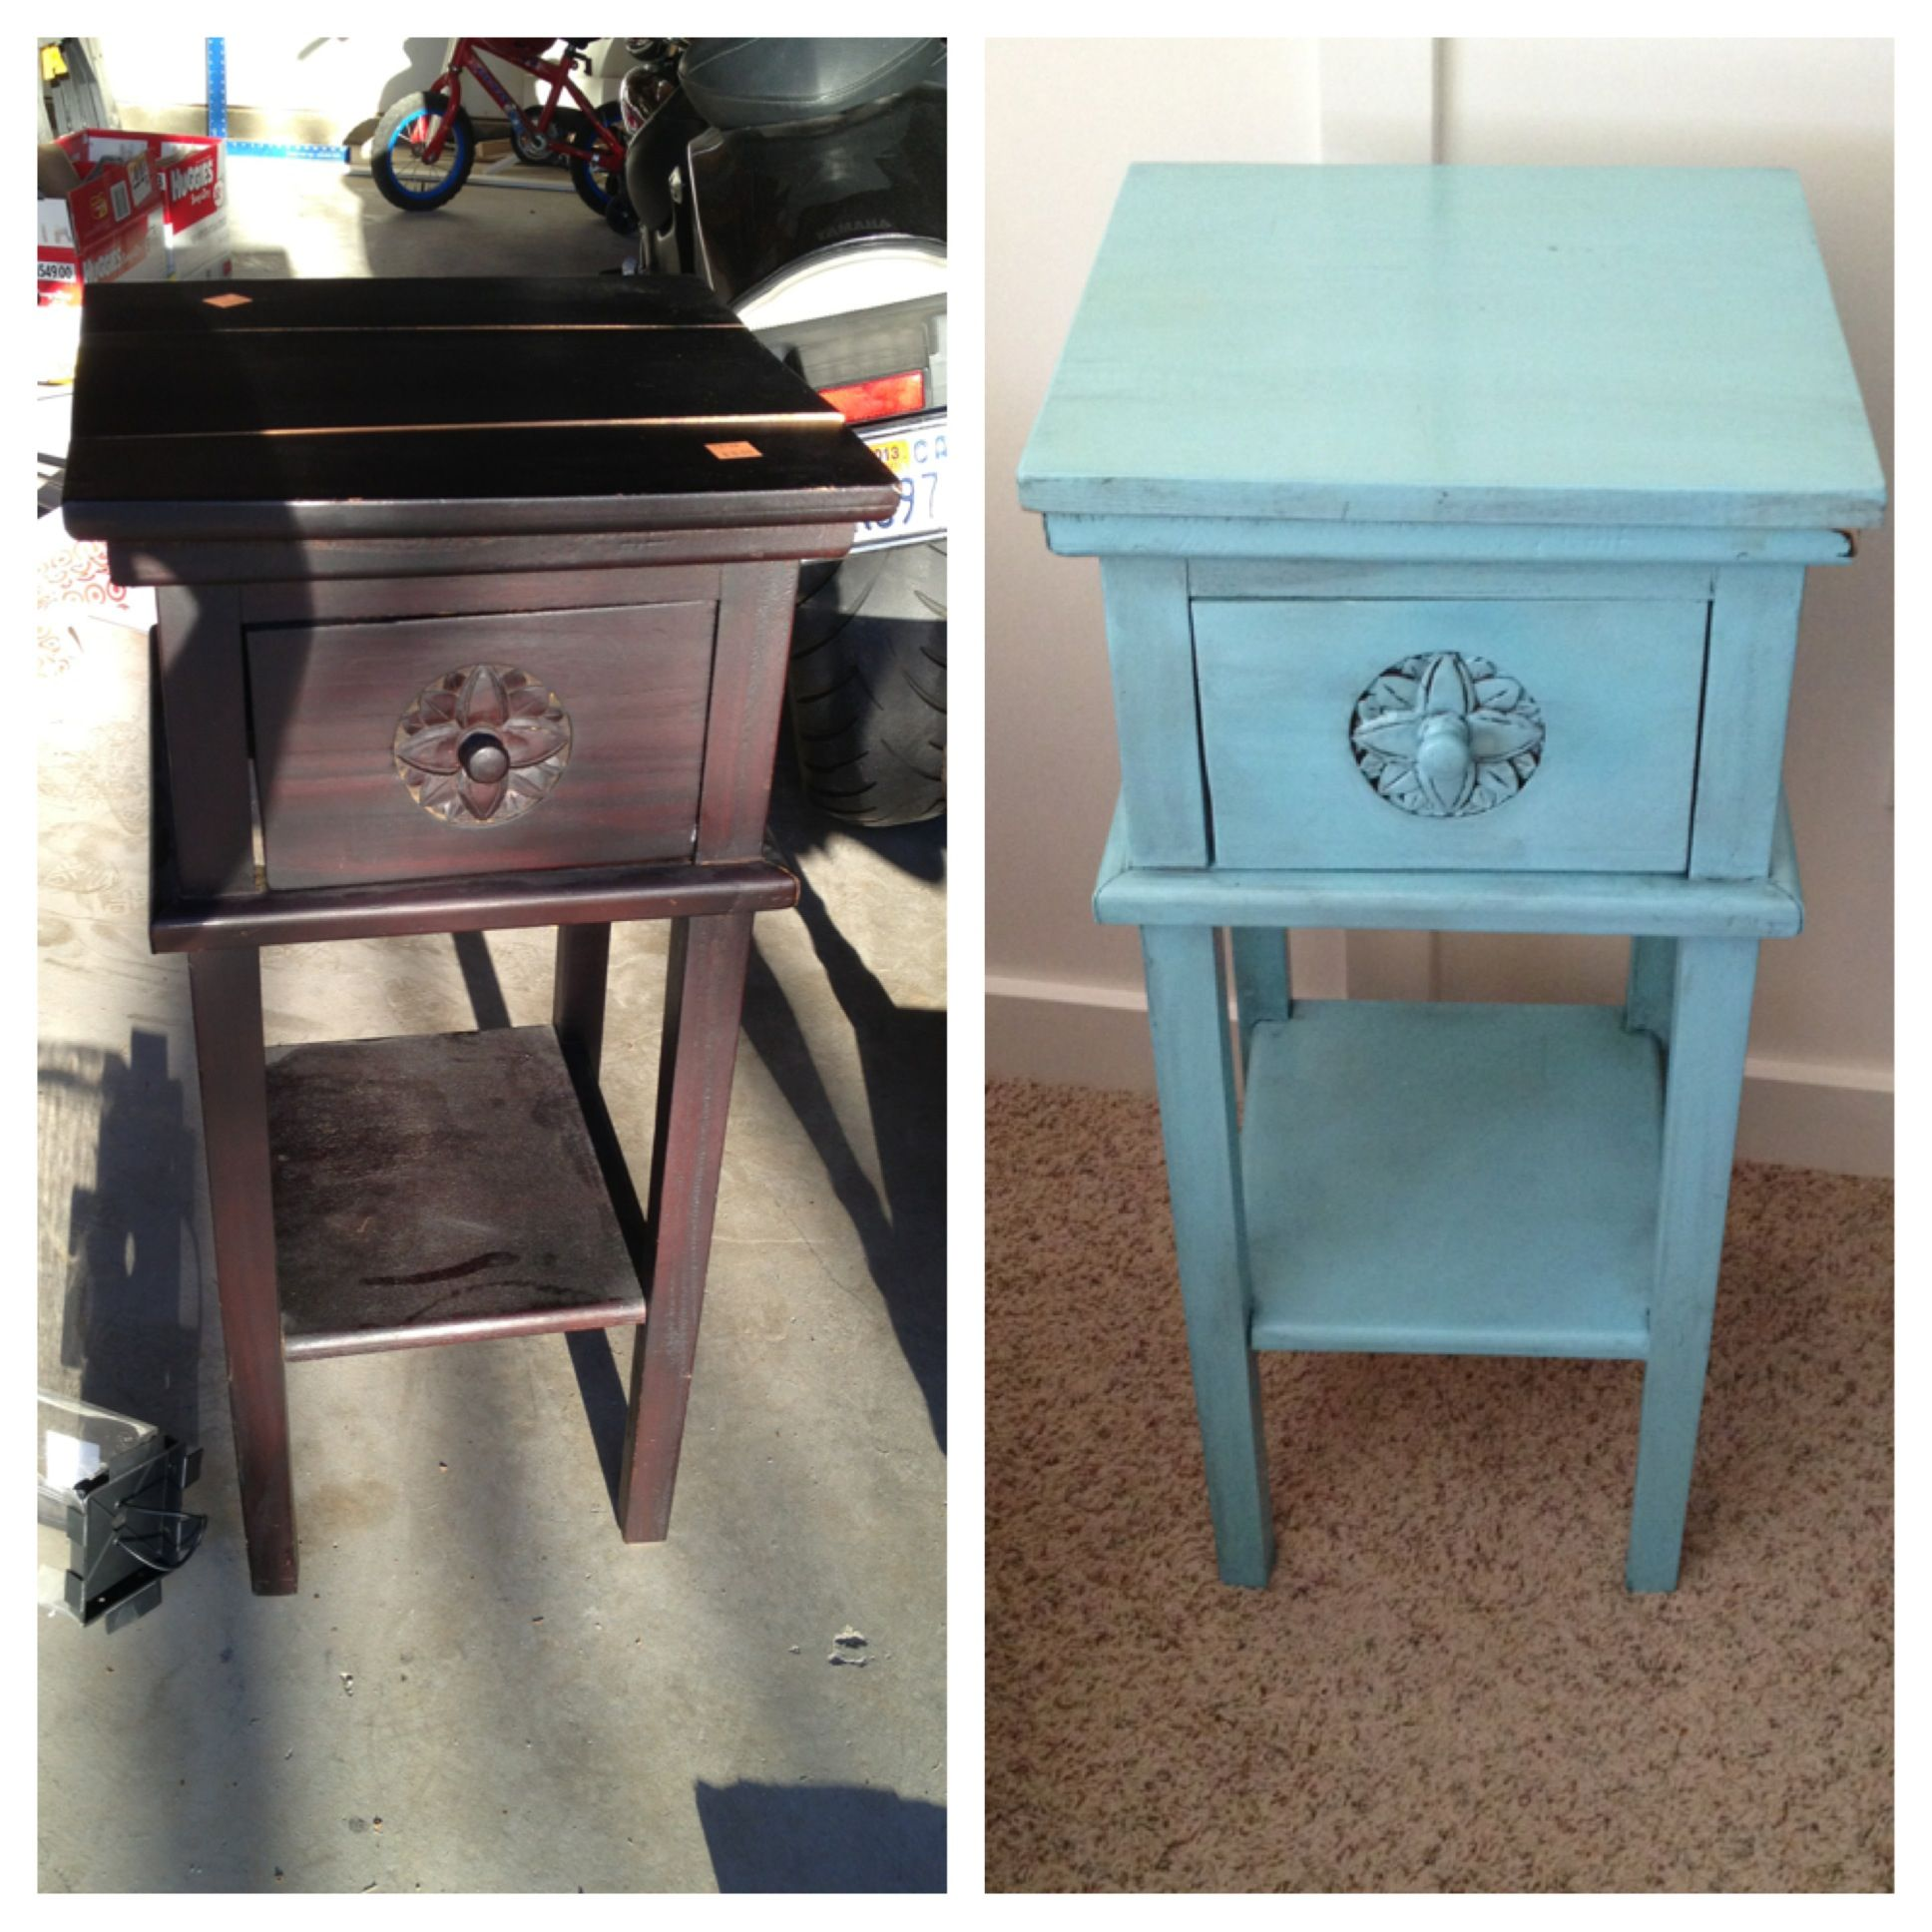 $8 goodwill find The Painted La s Furniture